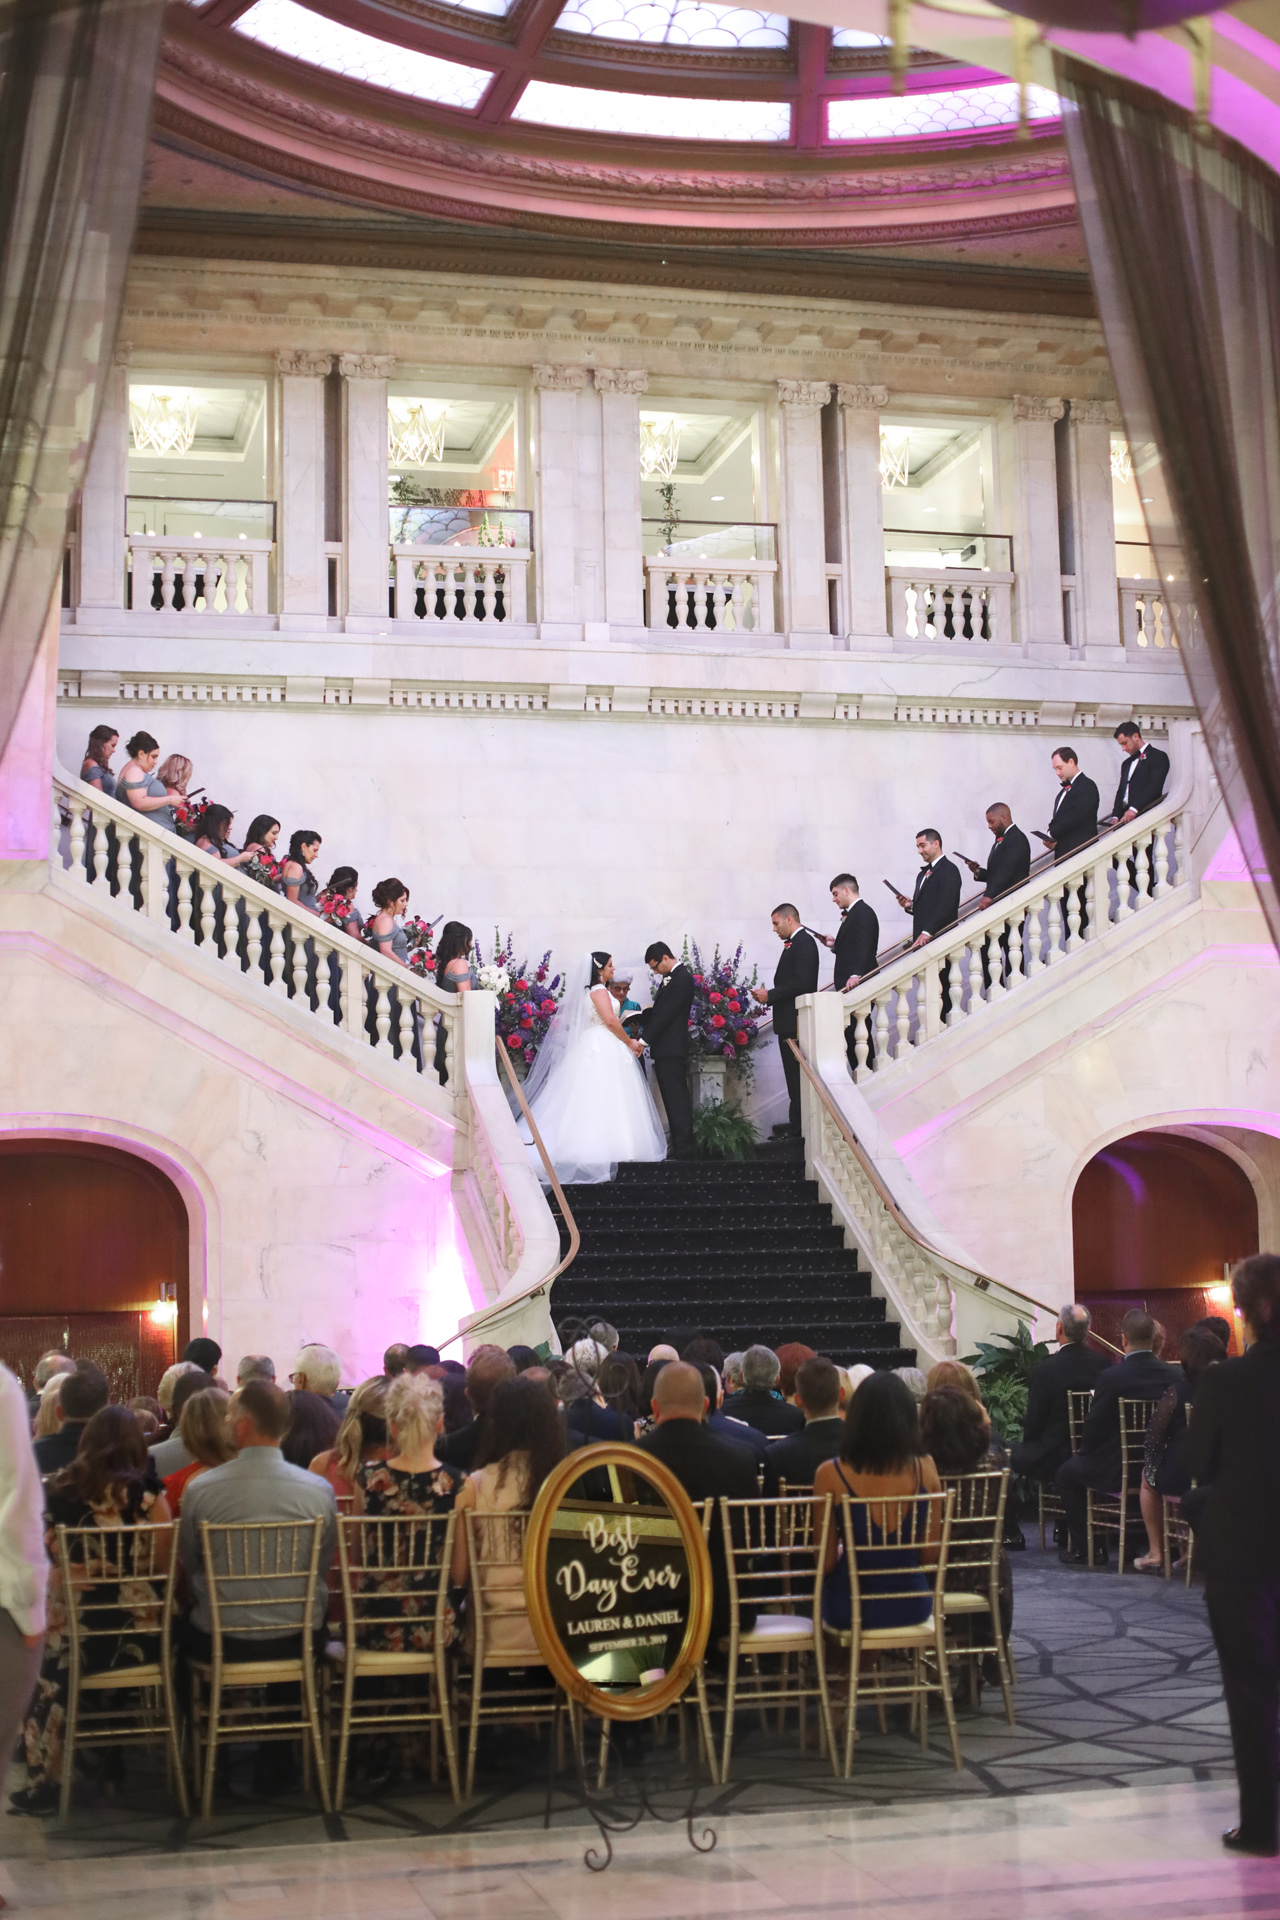 A wedding ceremony in the Renaissance Hotel, Pittsburgh, PA